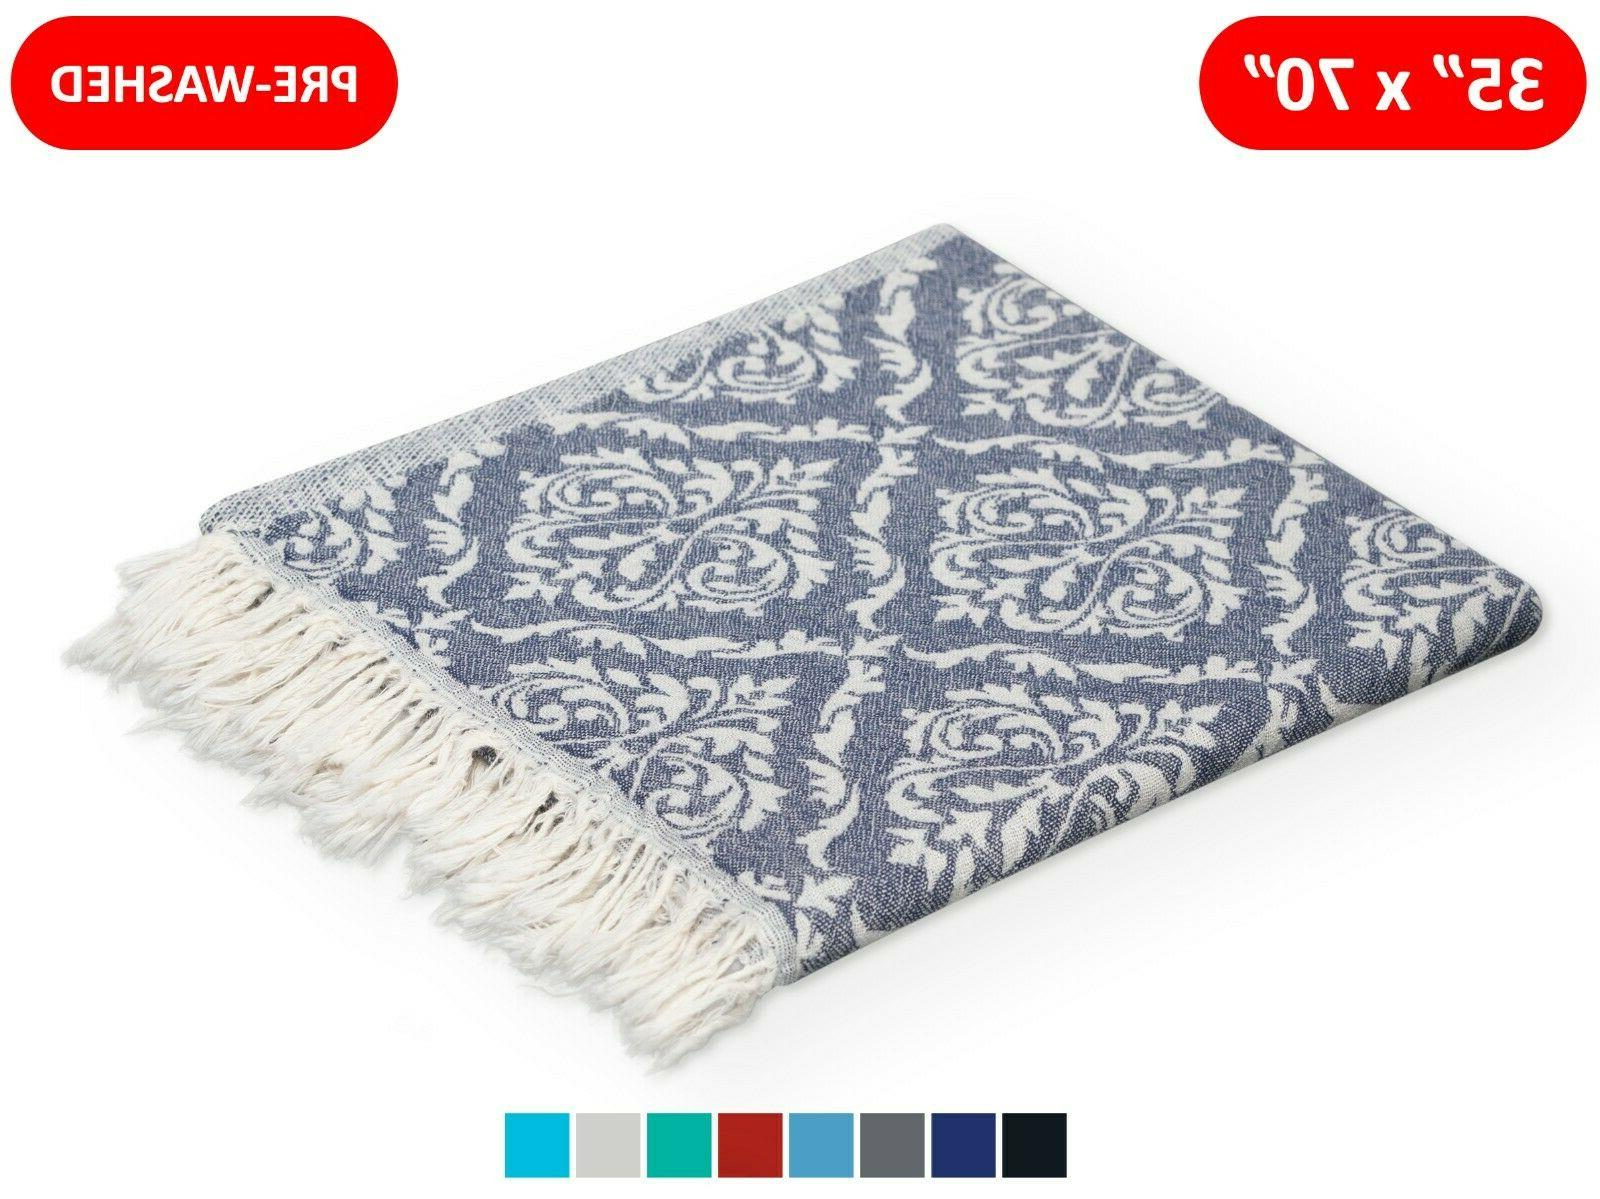 100% TURKISH COTTON MULTI-USE TOWEL 35x70 BEACH BLANKET THROW TAPESTRY